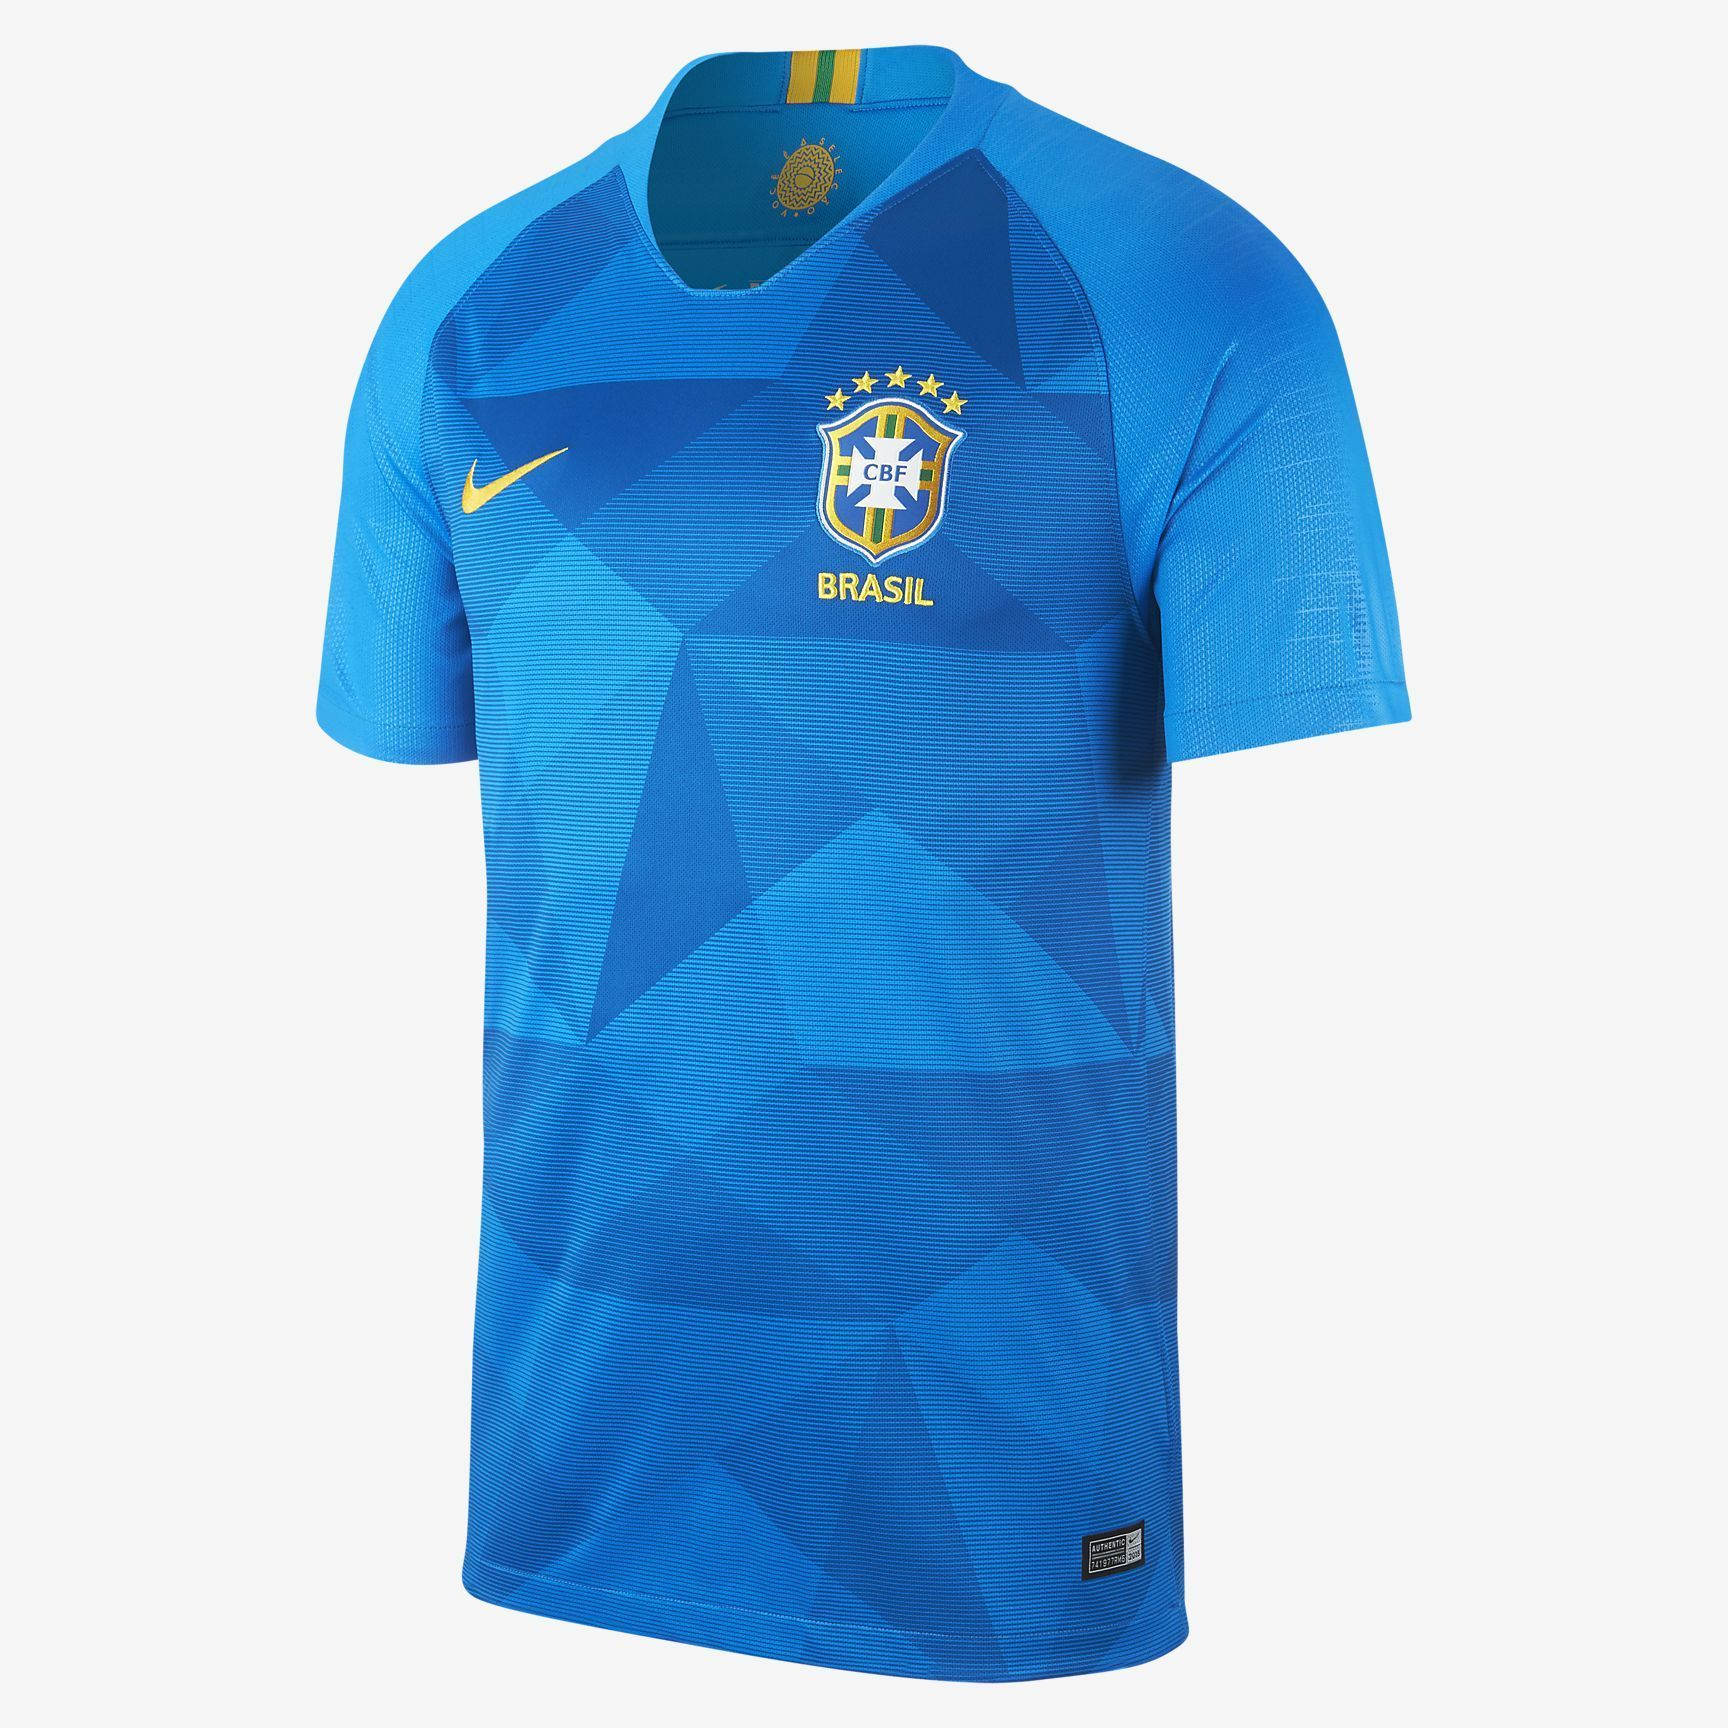 9e00188fac3 Nike brazil away jersey fifa world cup 2018